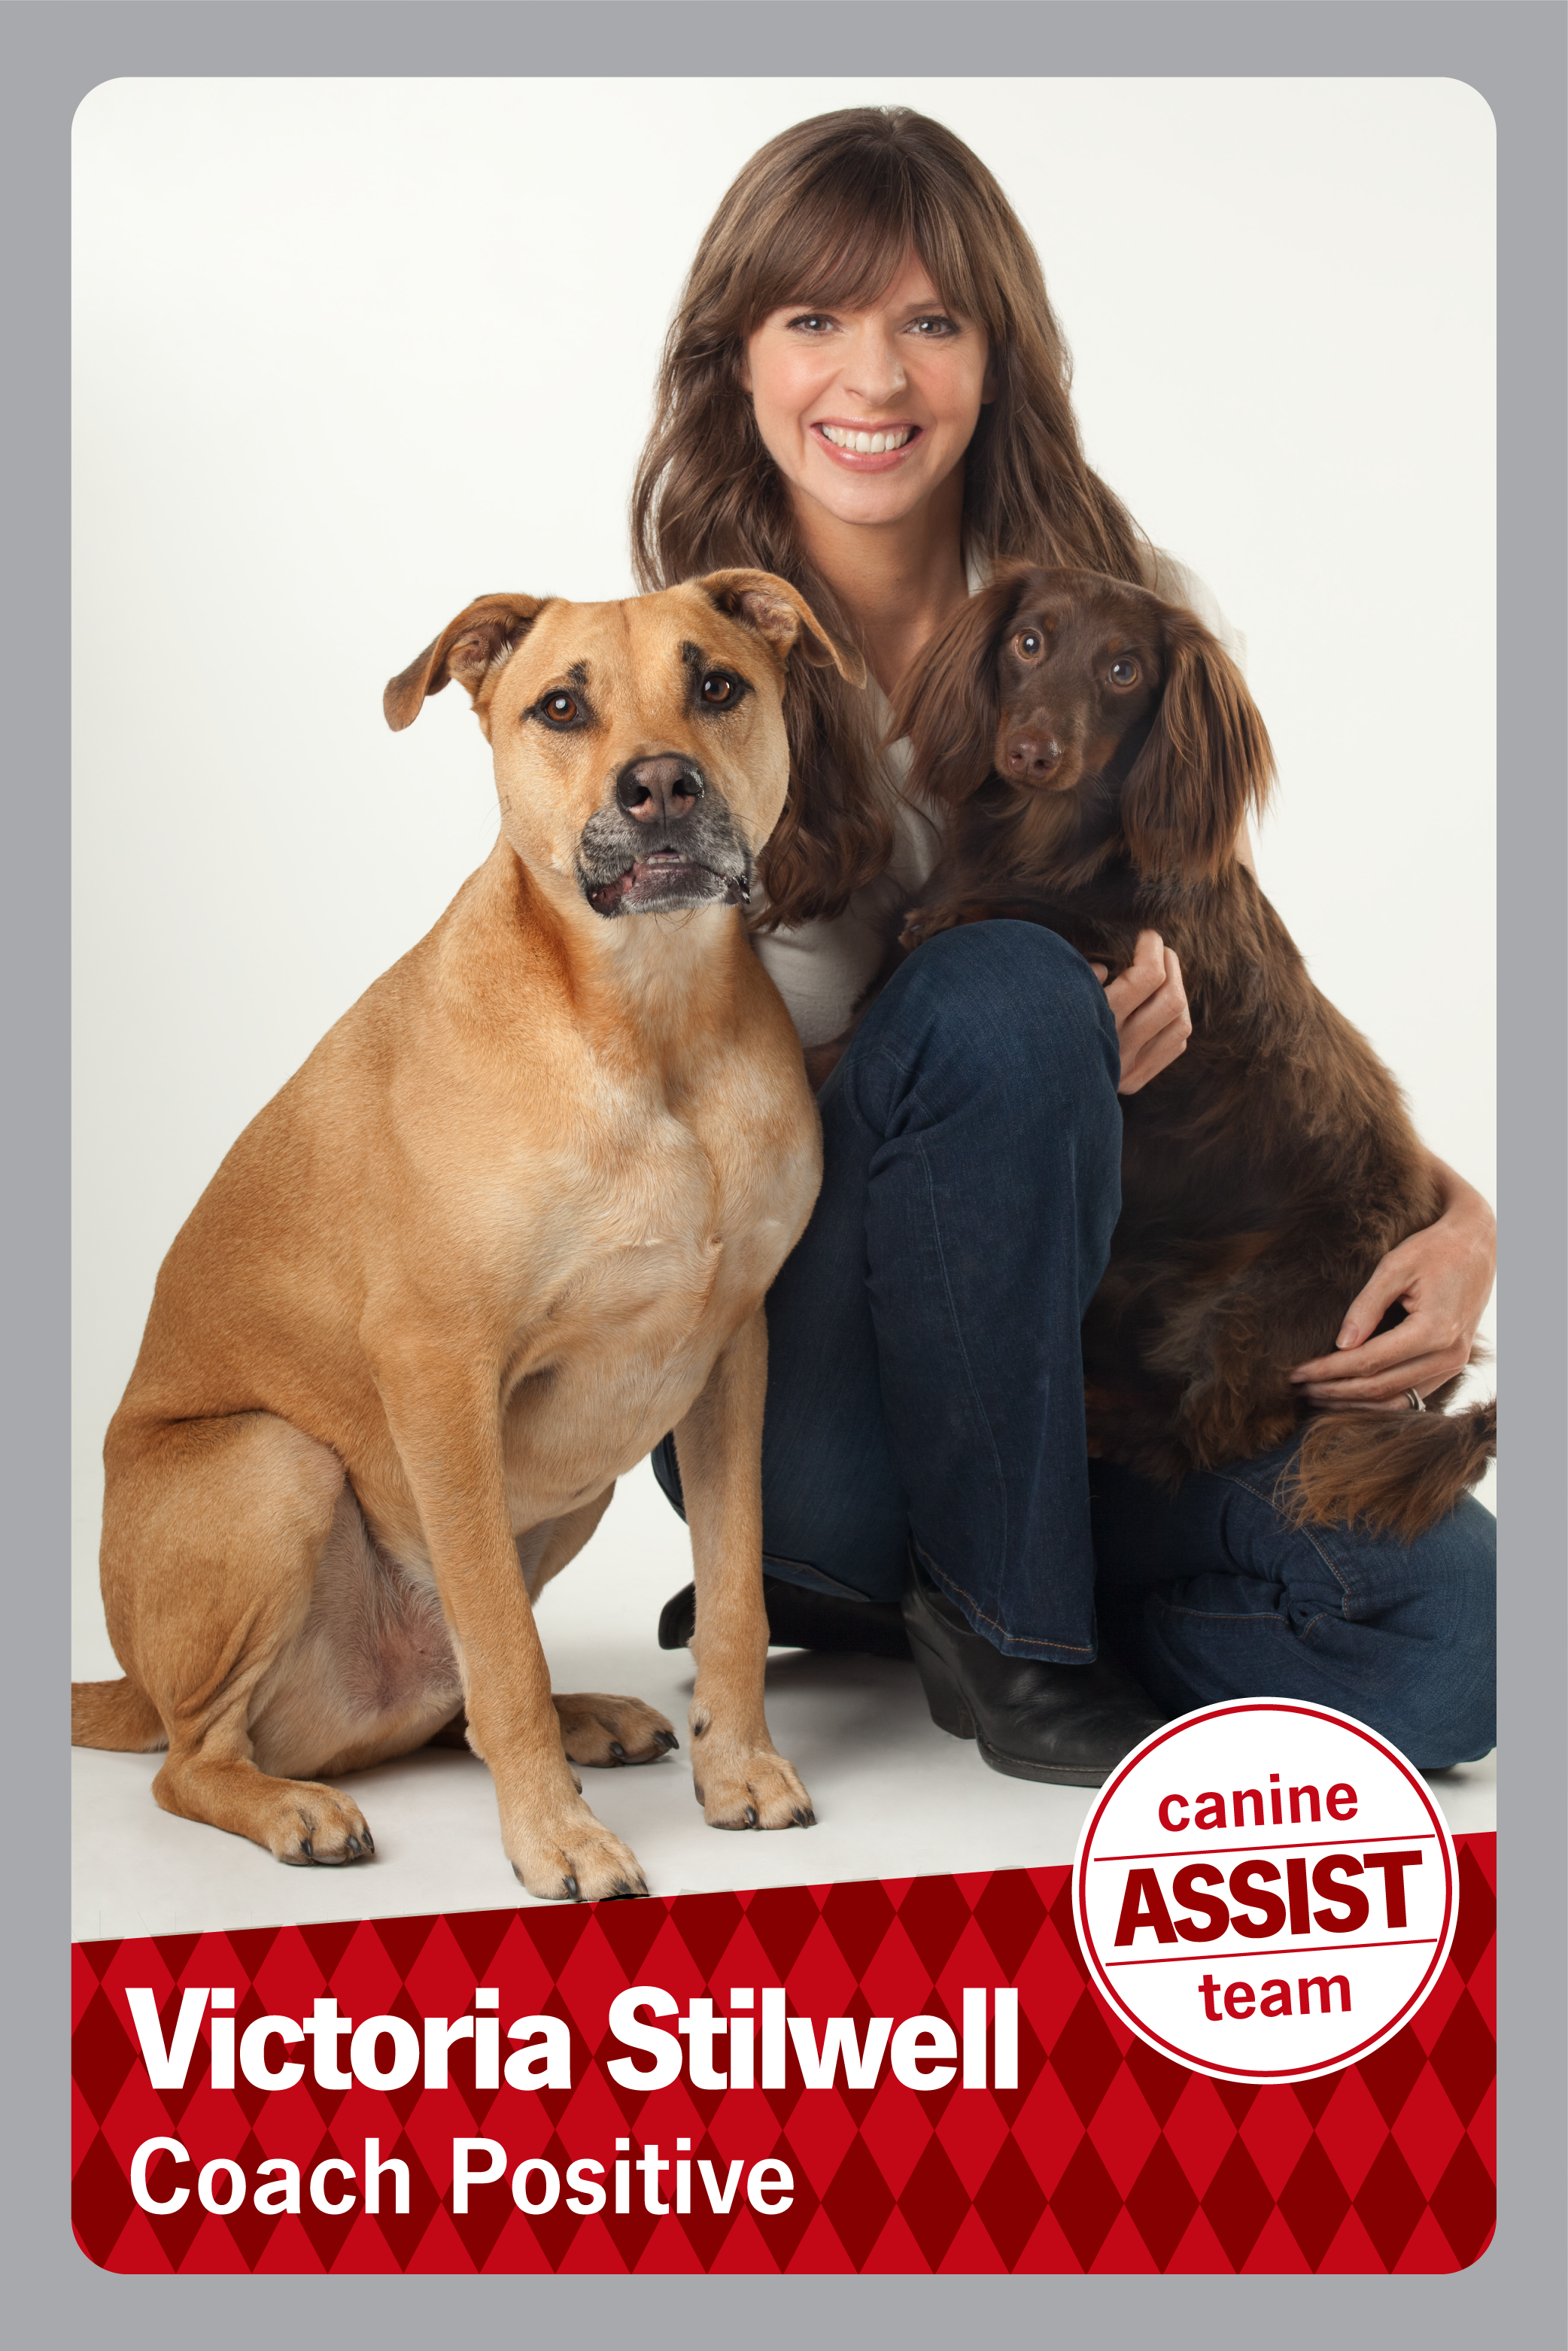 Victoria Stilwell Coach Positive, a picture of a woman with two dogs.